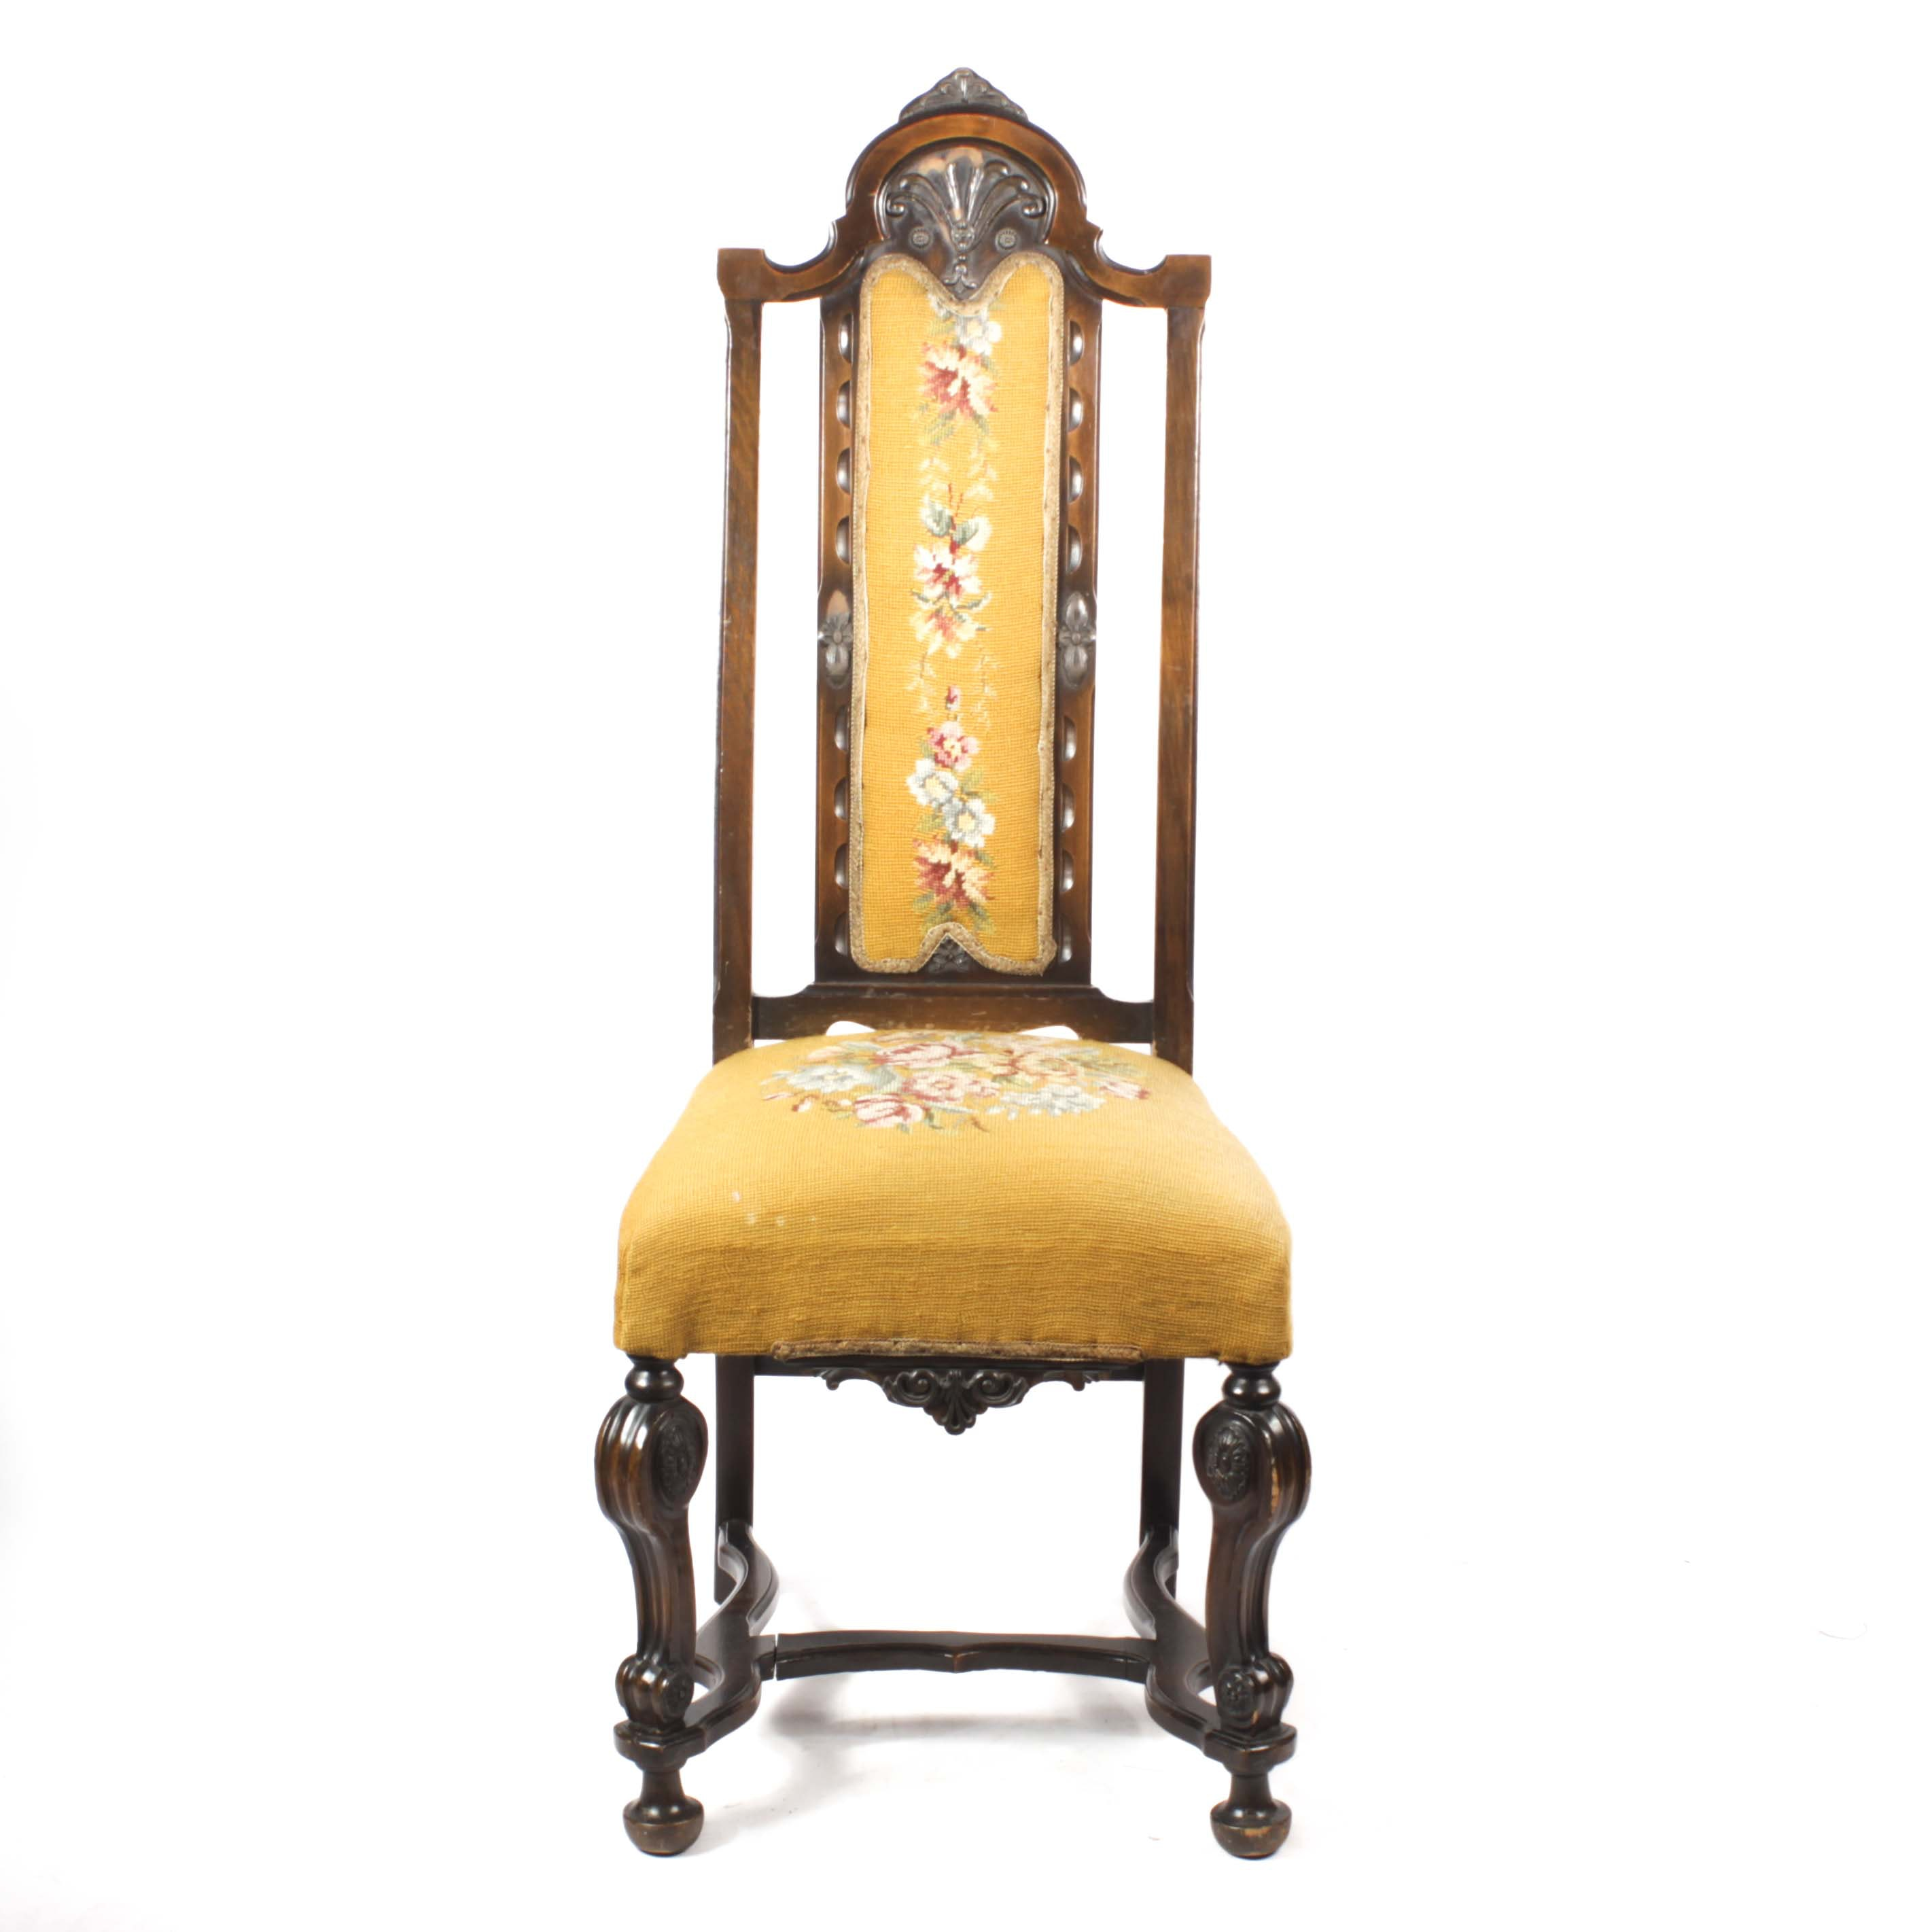 Victorian Walnut Chair With Needlepoint Upholstery, Early 20th Century